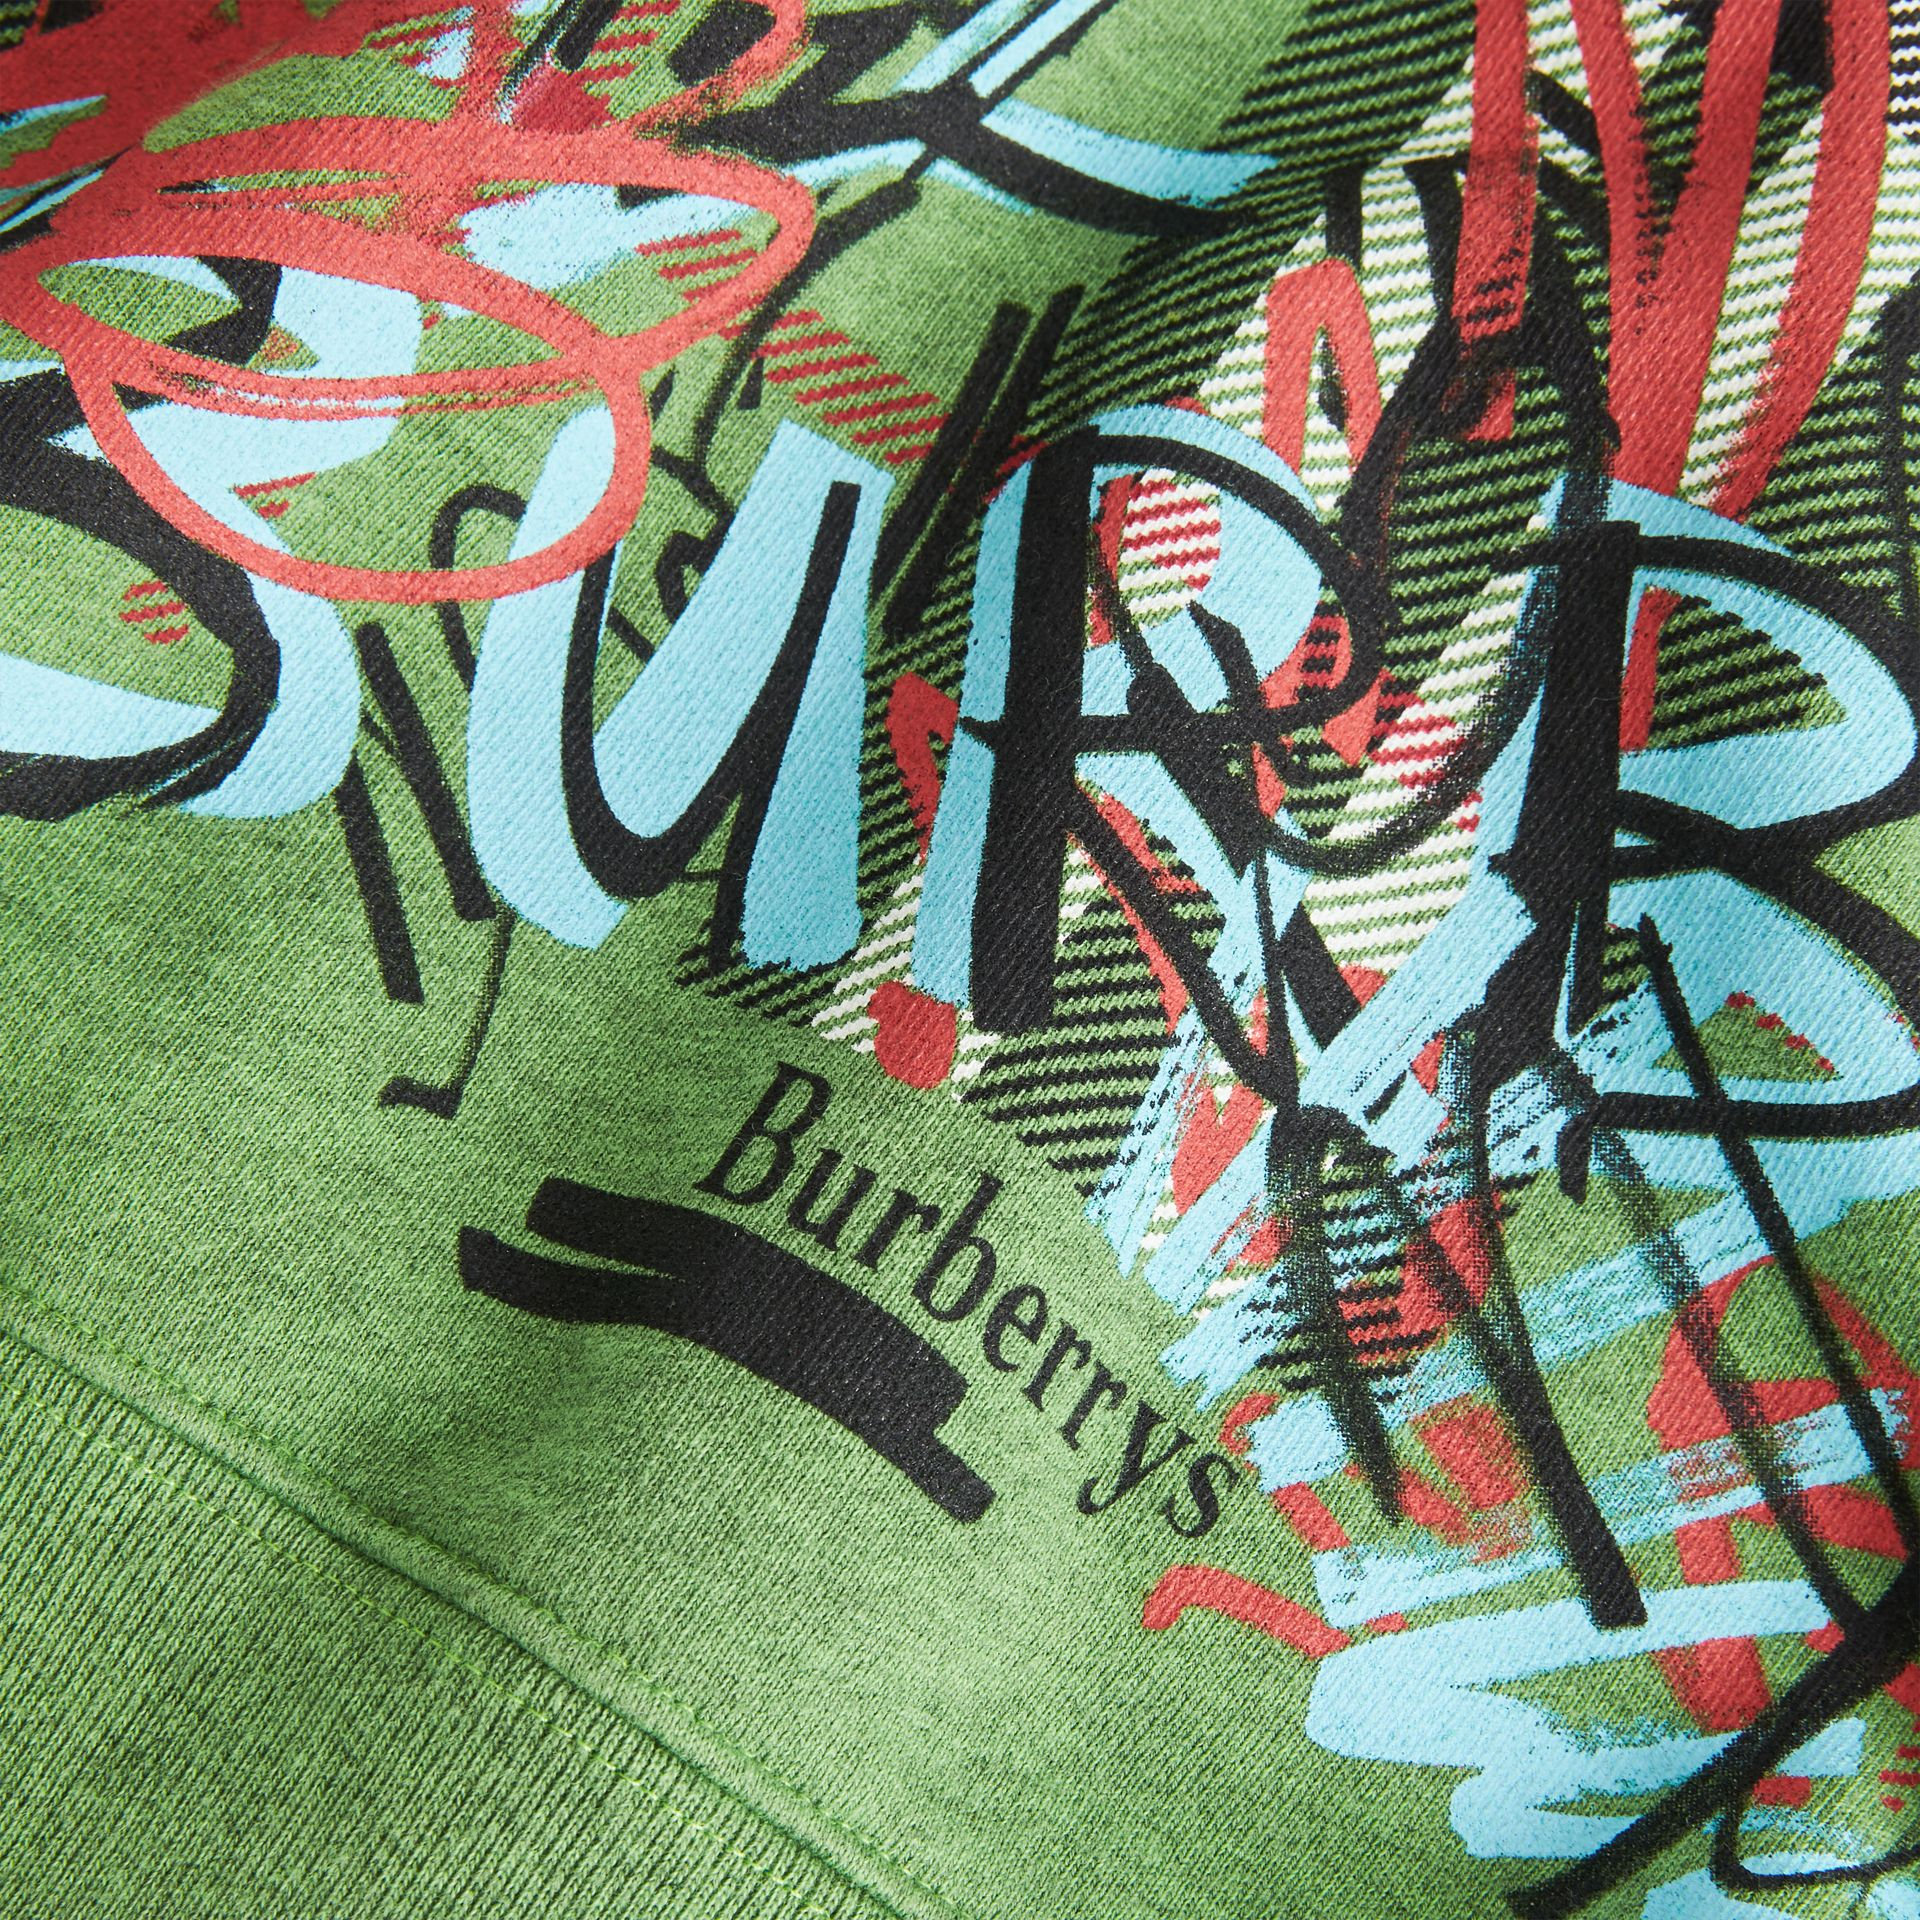 Graffiti Scribble Check Print Cotton Dress in Lime Green - Girl | Burberry Canada - gallery image 1